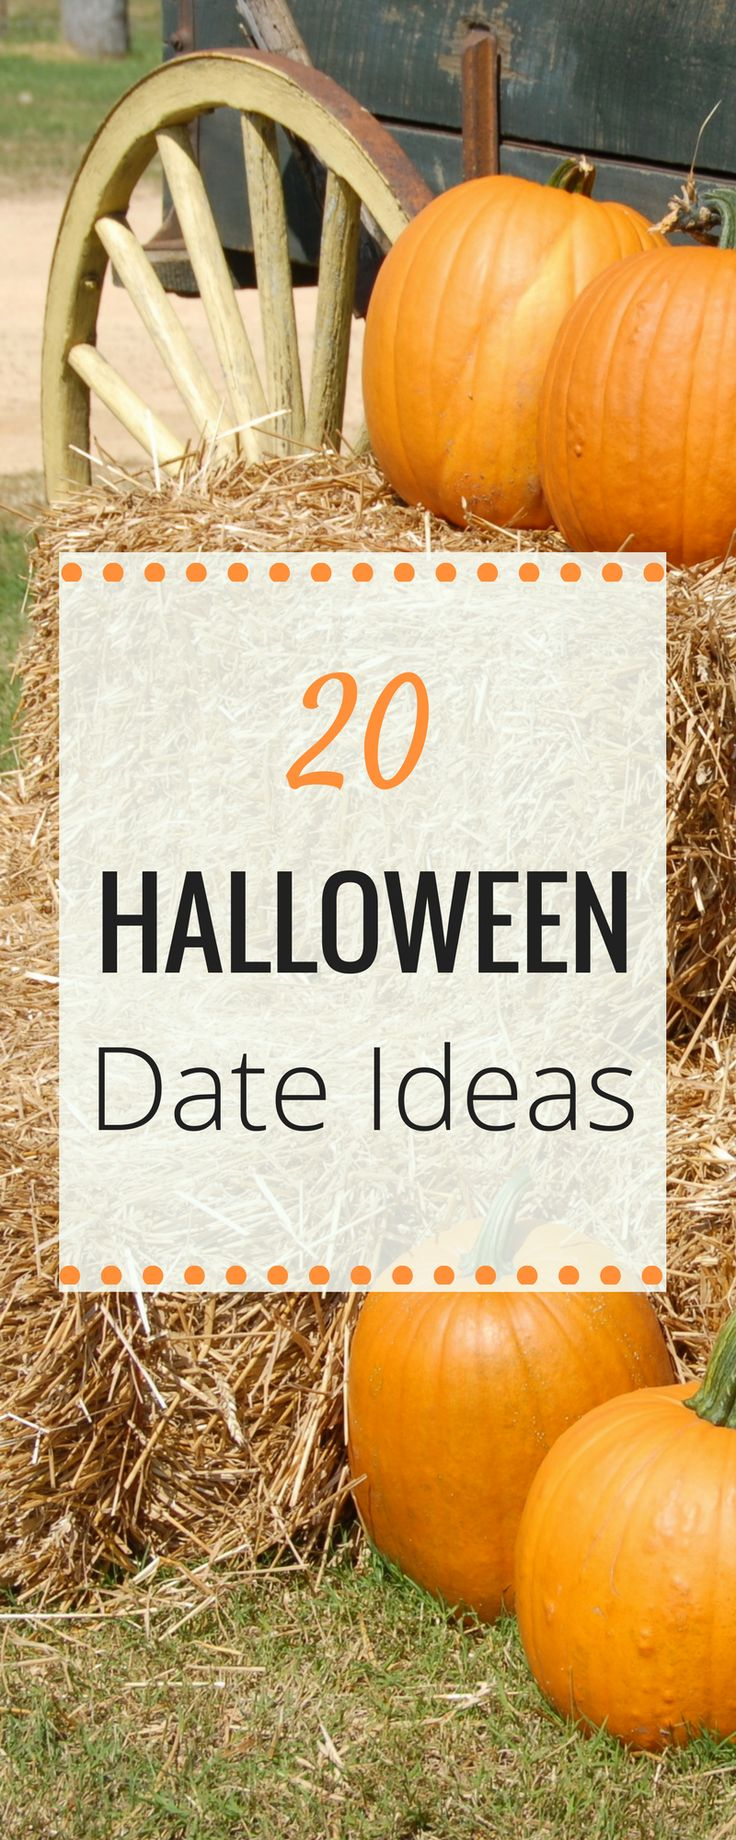 With fall coming up, here is a quick list of fun date ideas for halloween- Easy Halloween Date Ideas to do this fall